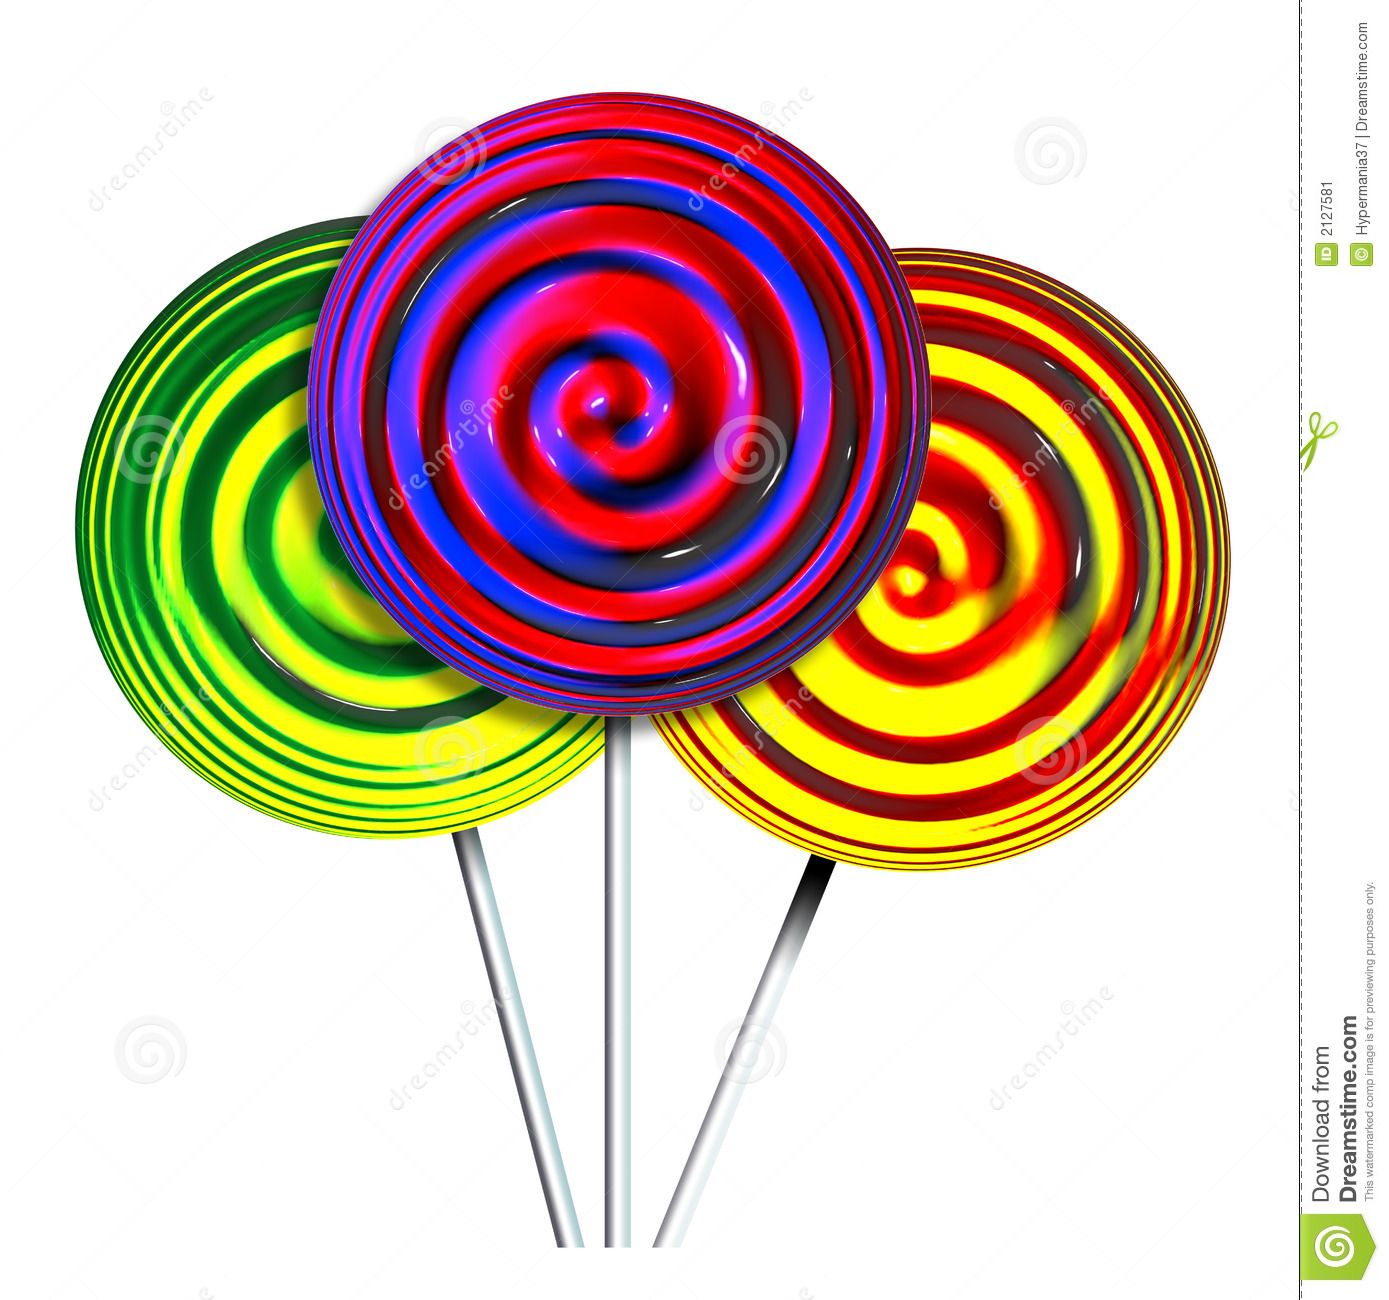 lollypops stock image image 2127581 Retail Storefront Clip Art storefront window clipart